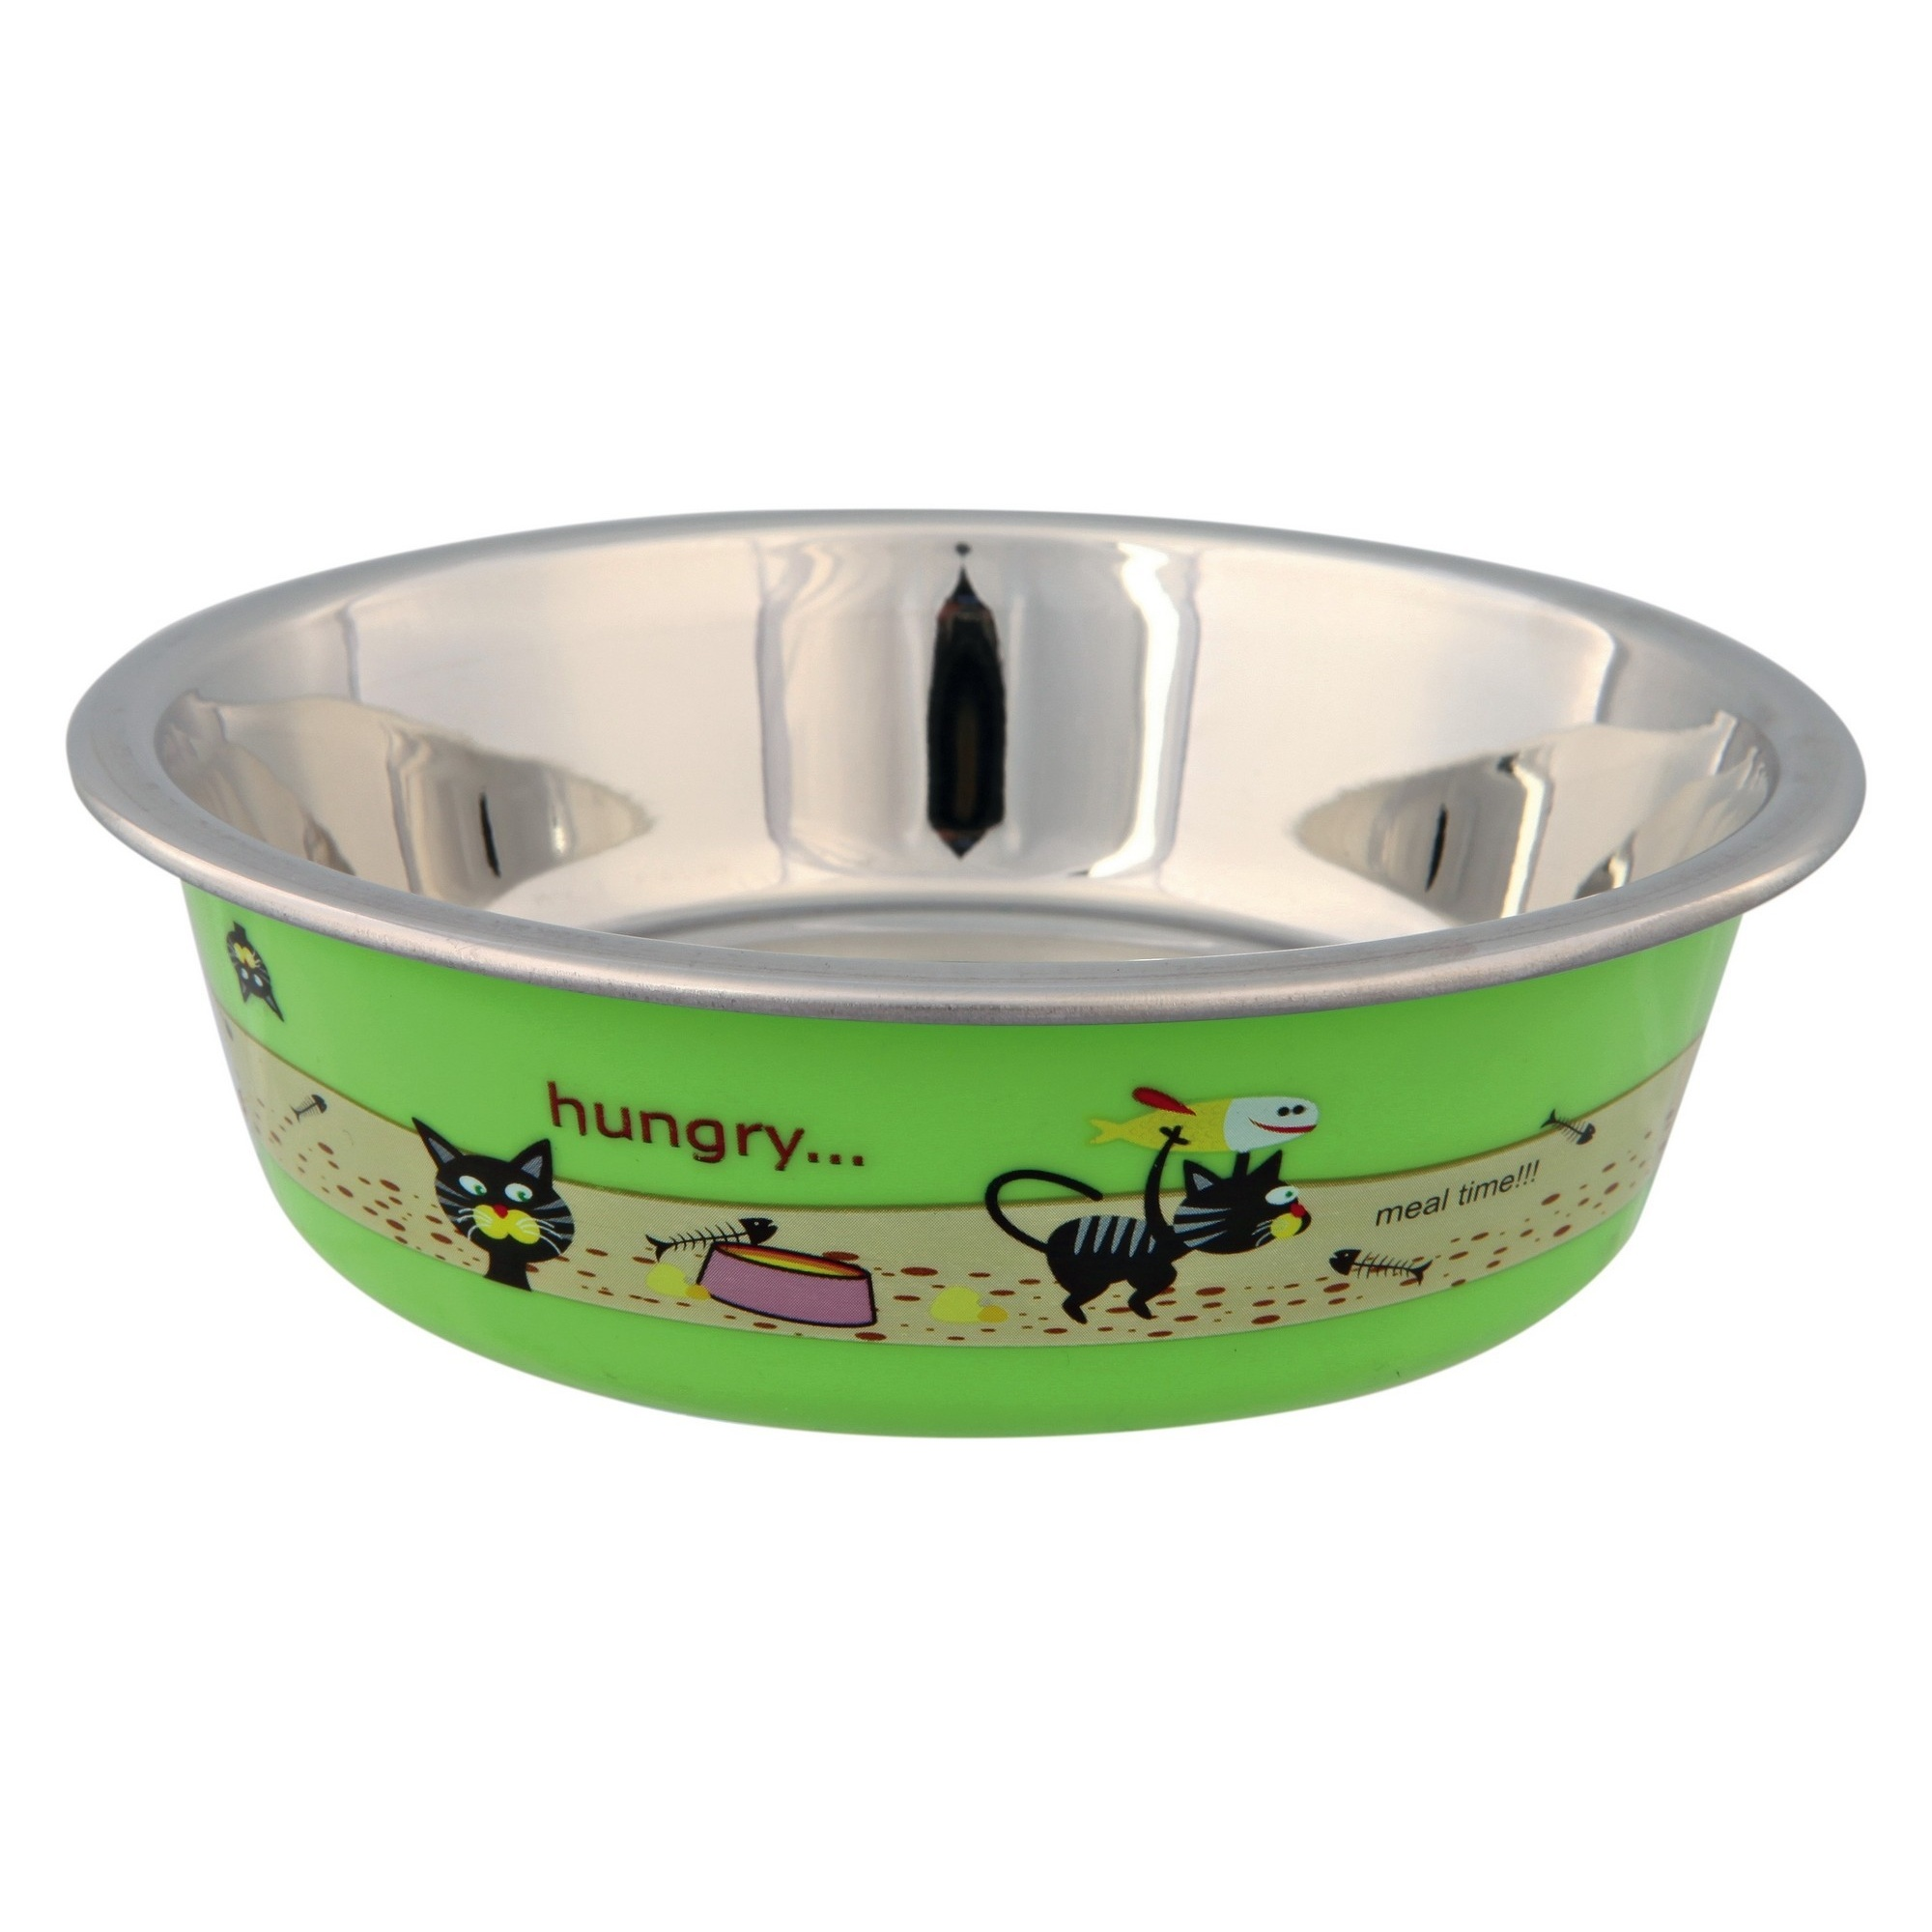 tx536 Asrtd Trixie Stainless Steel Cat Bowl With Plastic Coating